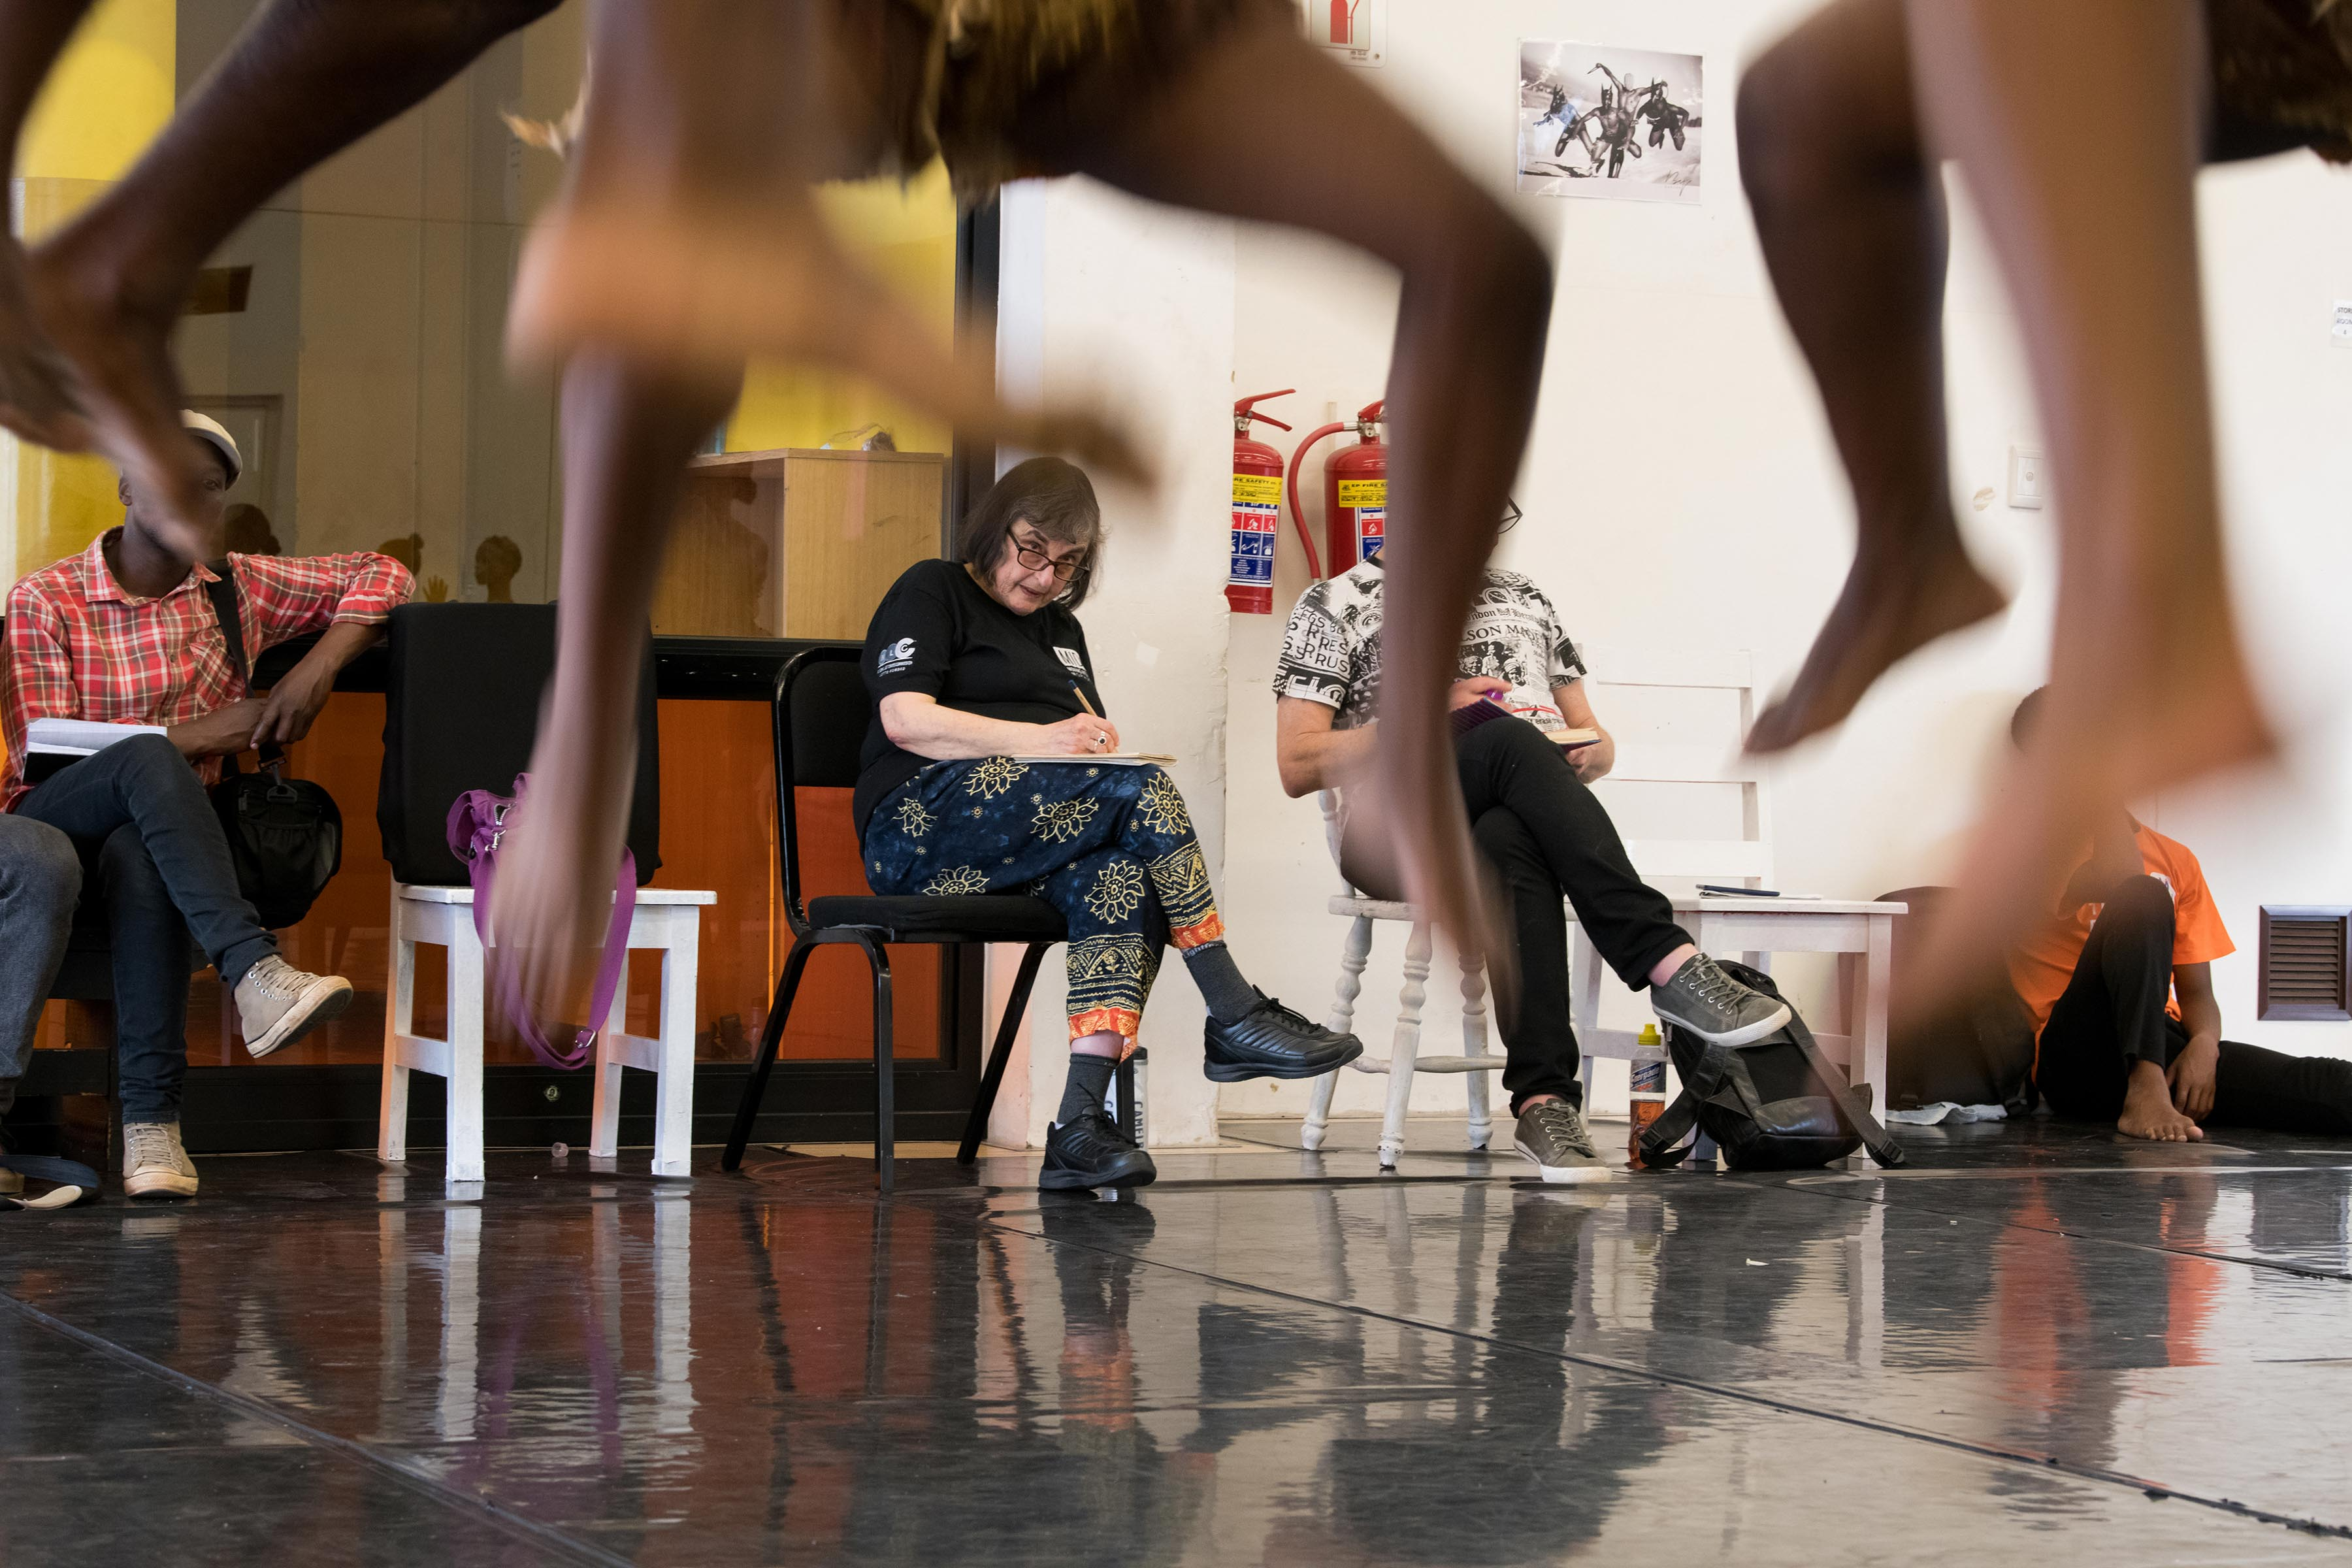 18 September 2019: Sylvia Glasser taking notes in a Moving into Dance dress rehearsal of the iconic work Tranceformations performed last week at the Market Theatre.